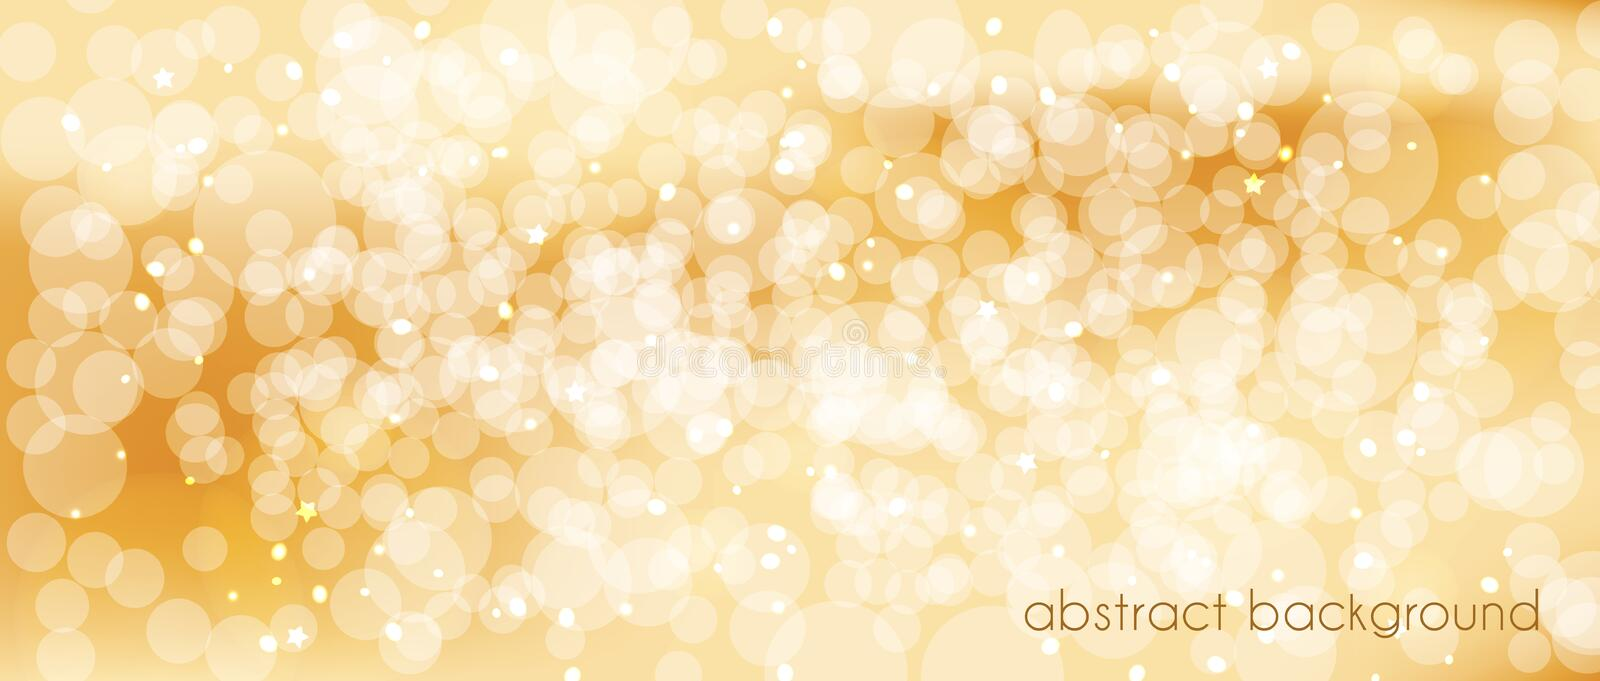 Abstract vector background in gold tones. Backdrop for decorating the site`s Header, banner, holiday cards, congratulations vector illustration